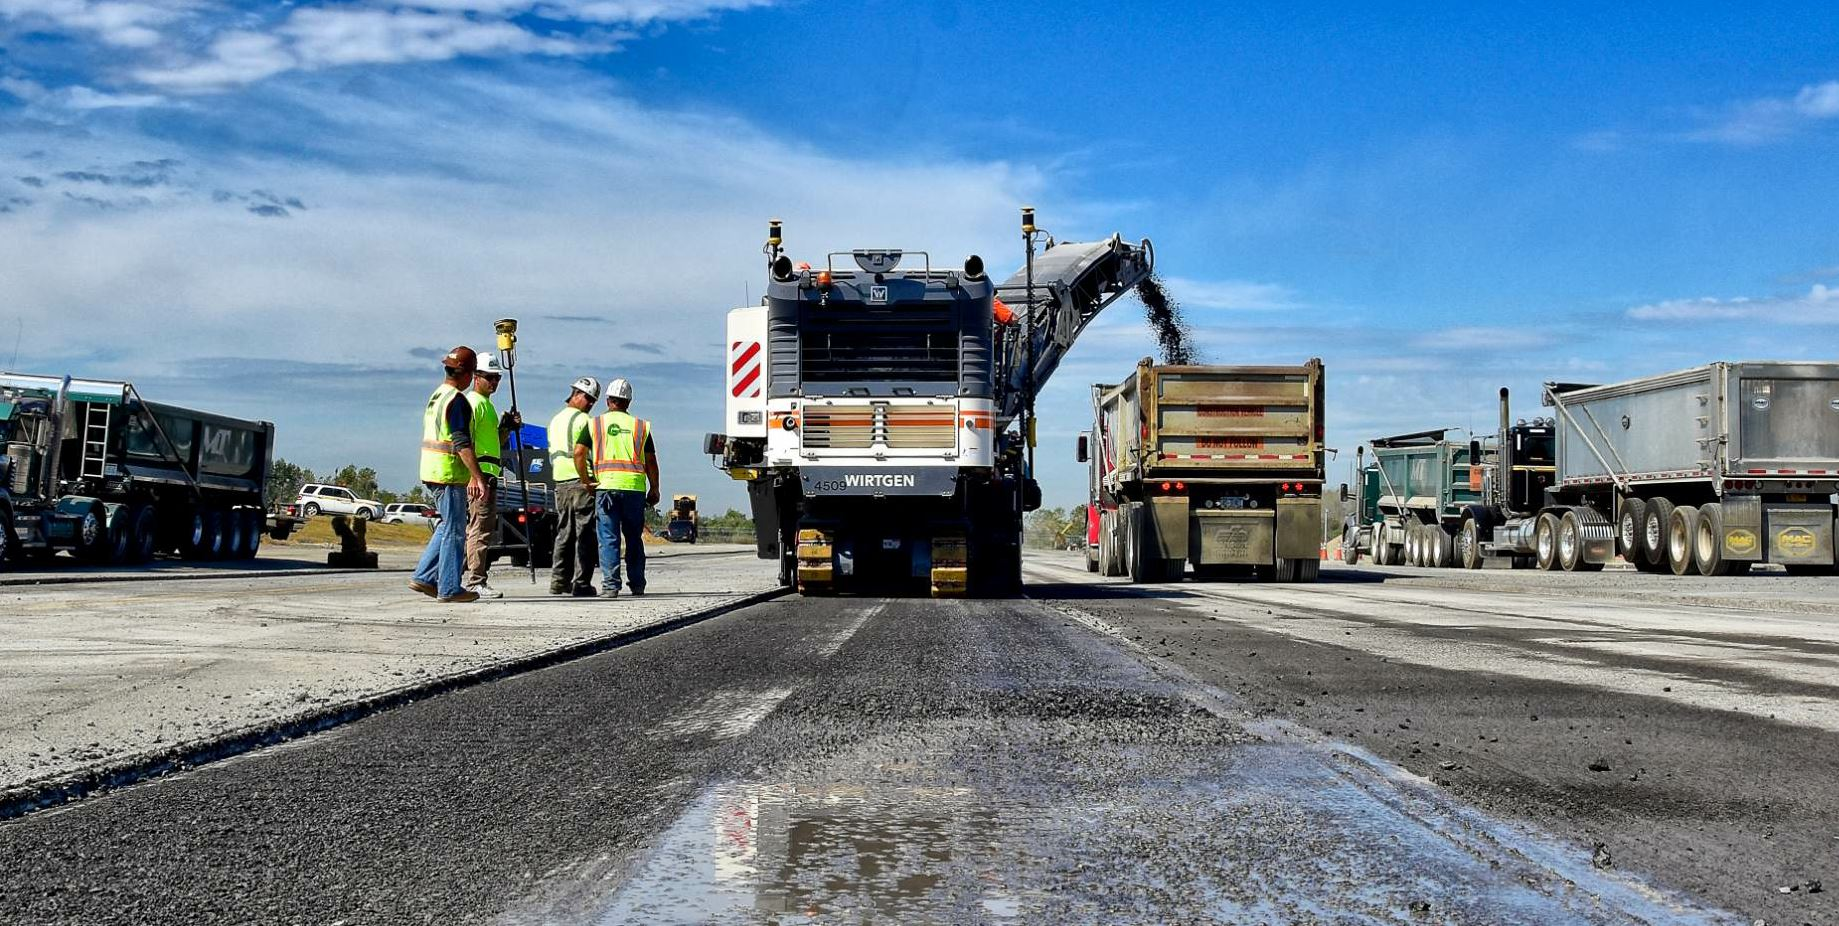 """""""…because the grade control will hold us at 3 inches below finished grade the whole time, our quantities—projected at 3,000 tons for Phase 3 alone—will be accurate,"""" Paul Ceglia said."""